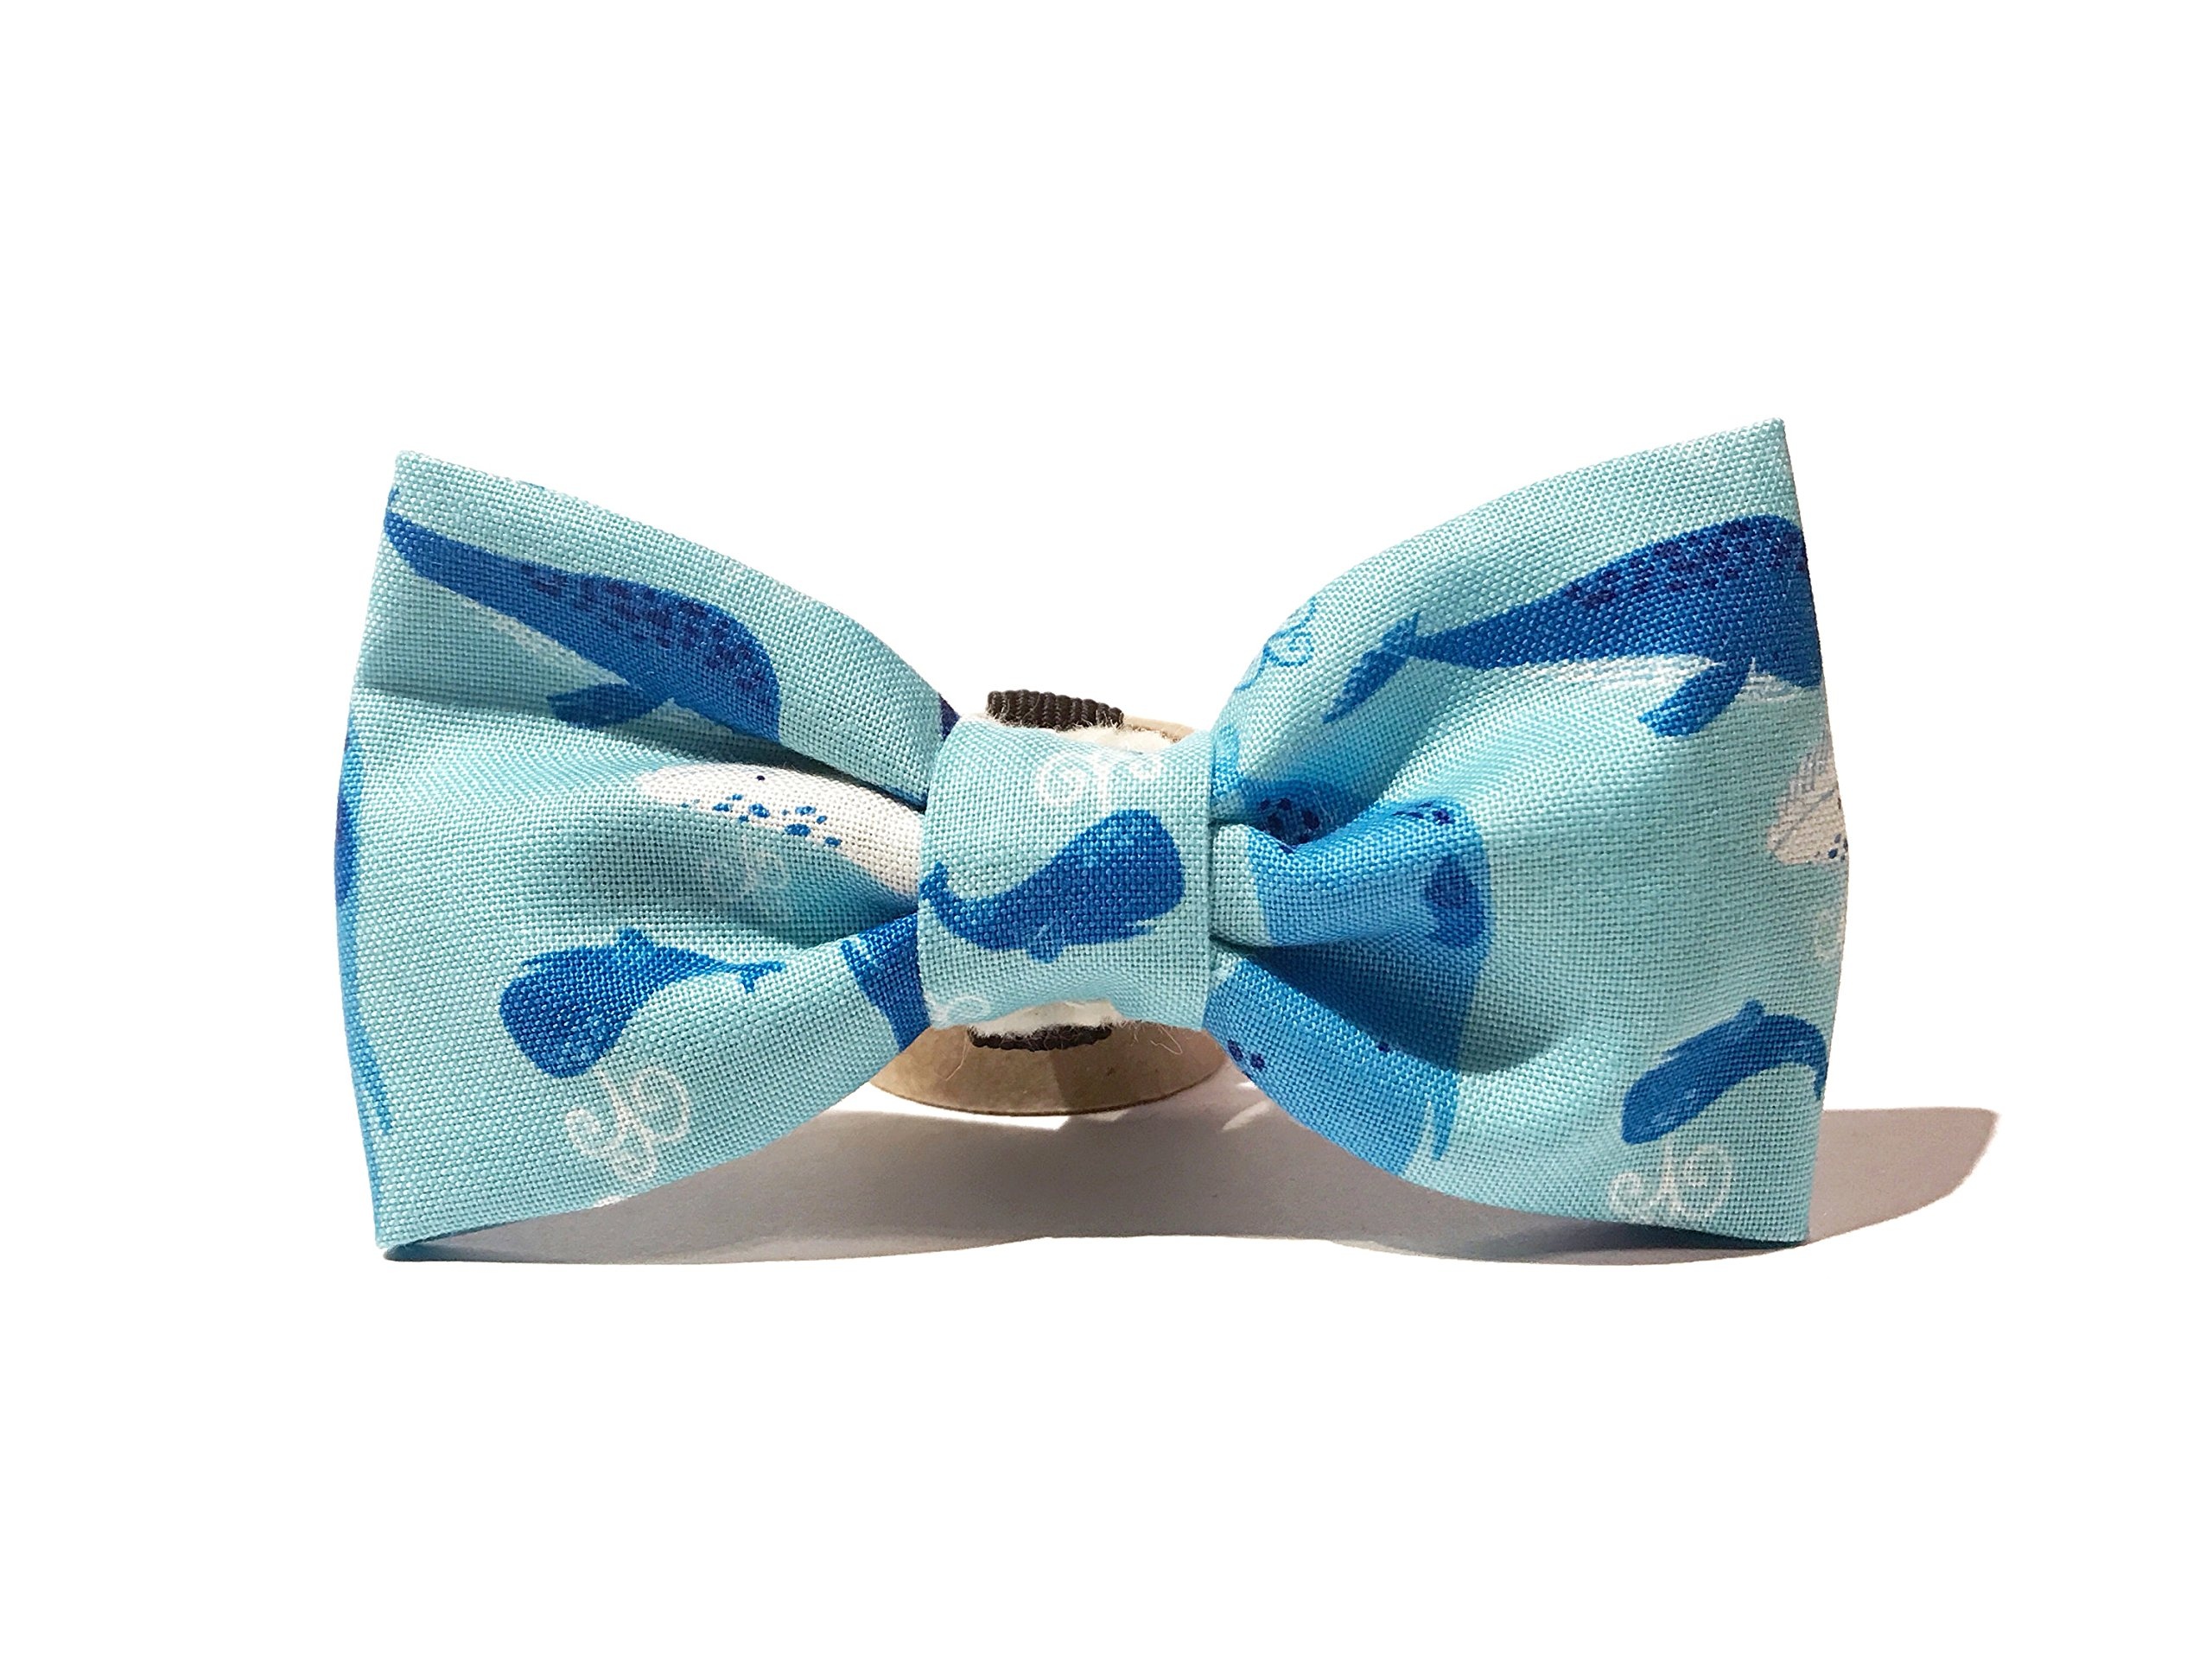 Very Vintage Design Dog Cat Collar Bow Tie Blue Whale Nautical & Preppy Summer Fun Light Blue Whales Narwhals Hand Crafted Collection Organic Cotton Personalized Adjustable Pet Bowtie